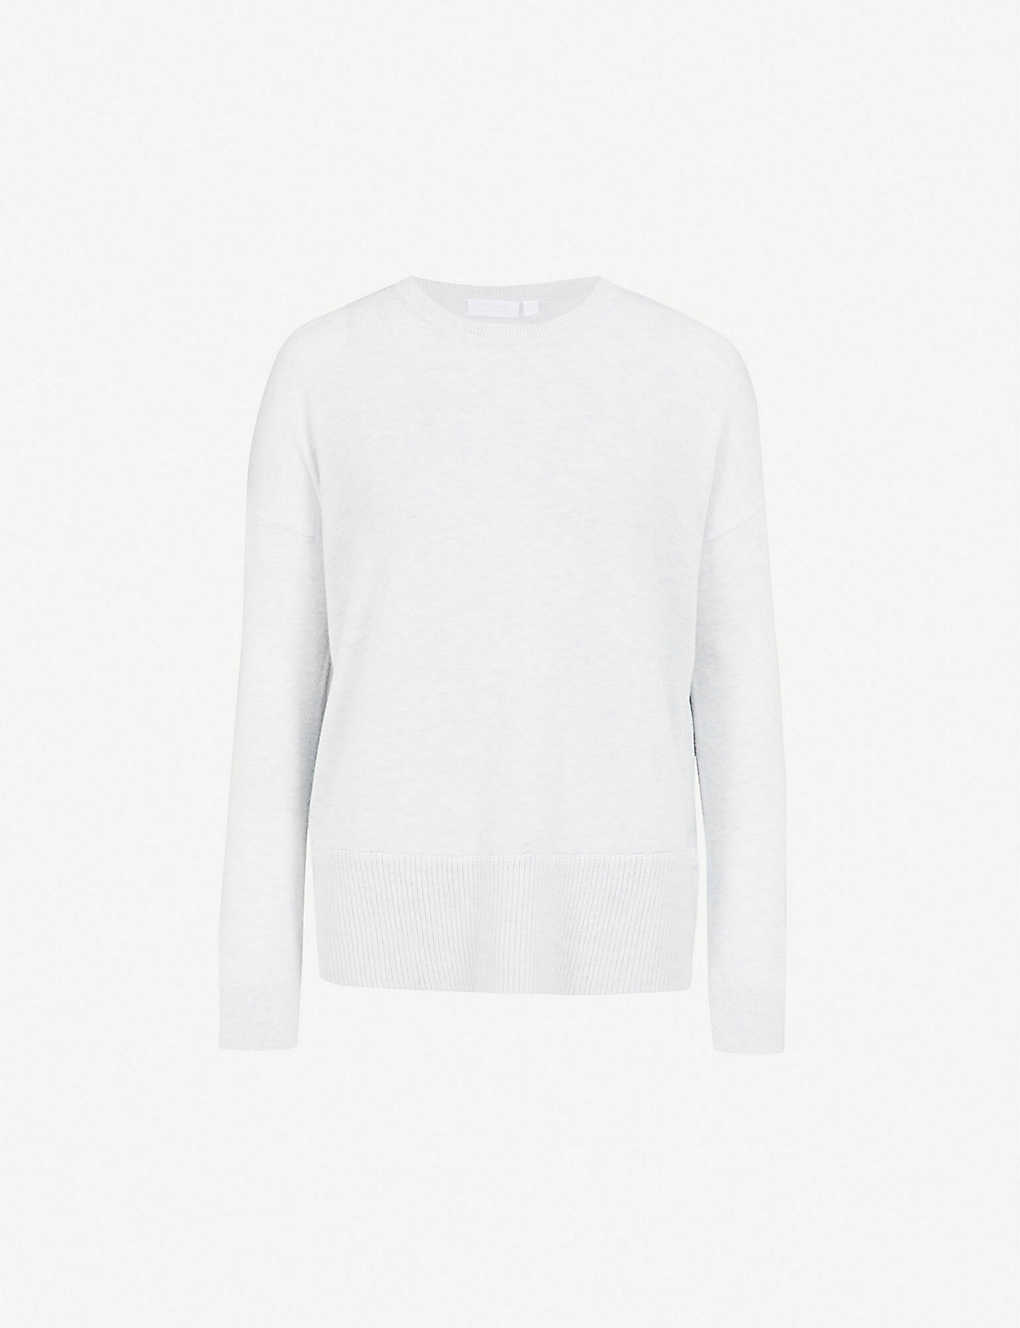 877af061fd THE WHITE COMPANY - Button-side knitted jumper | Selfridges.com